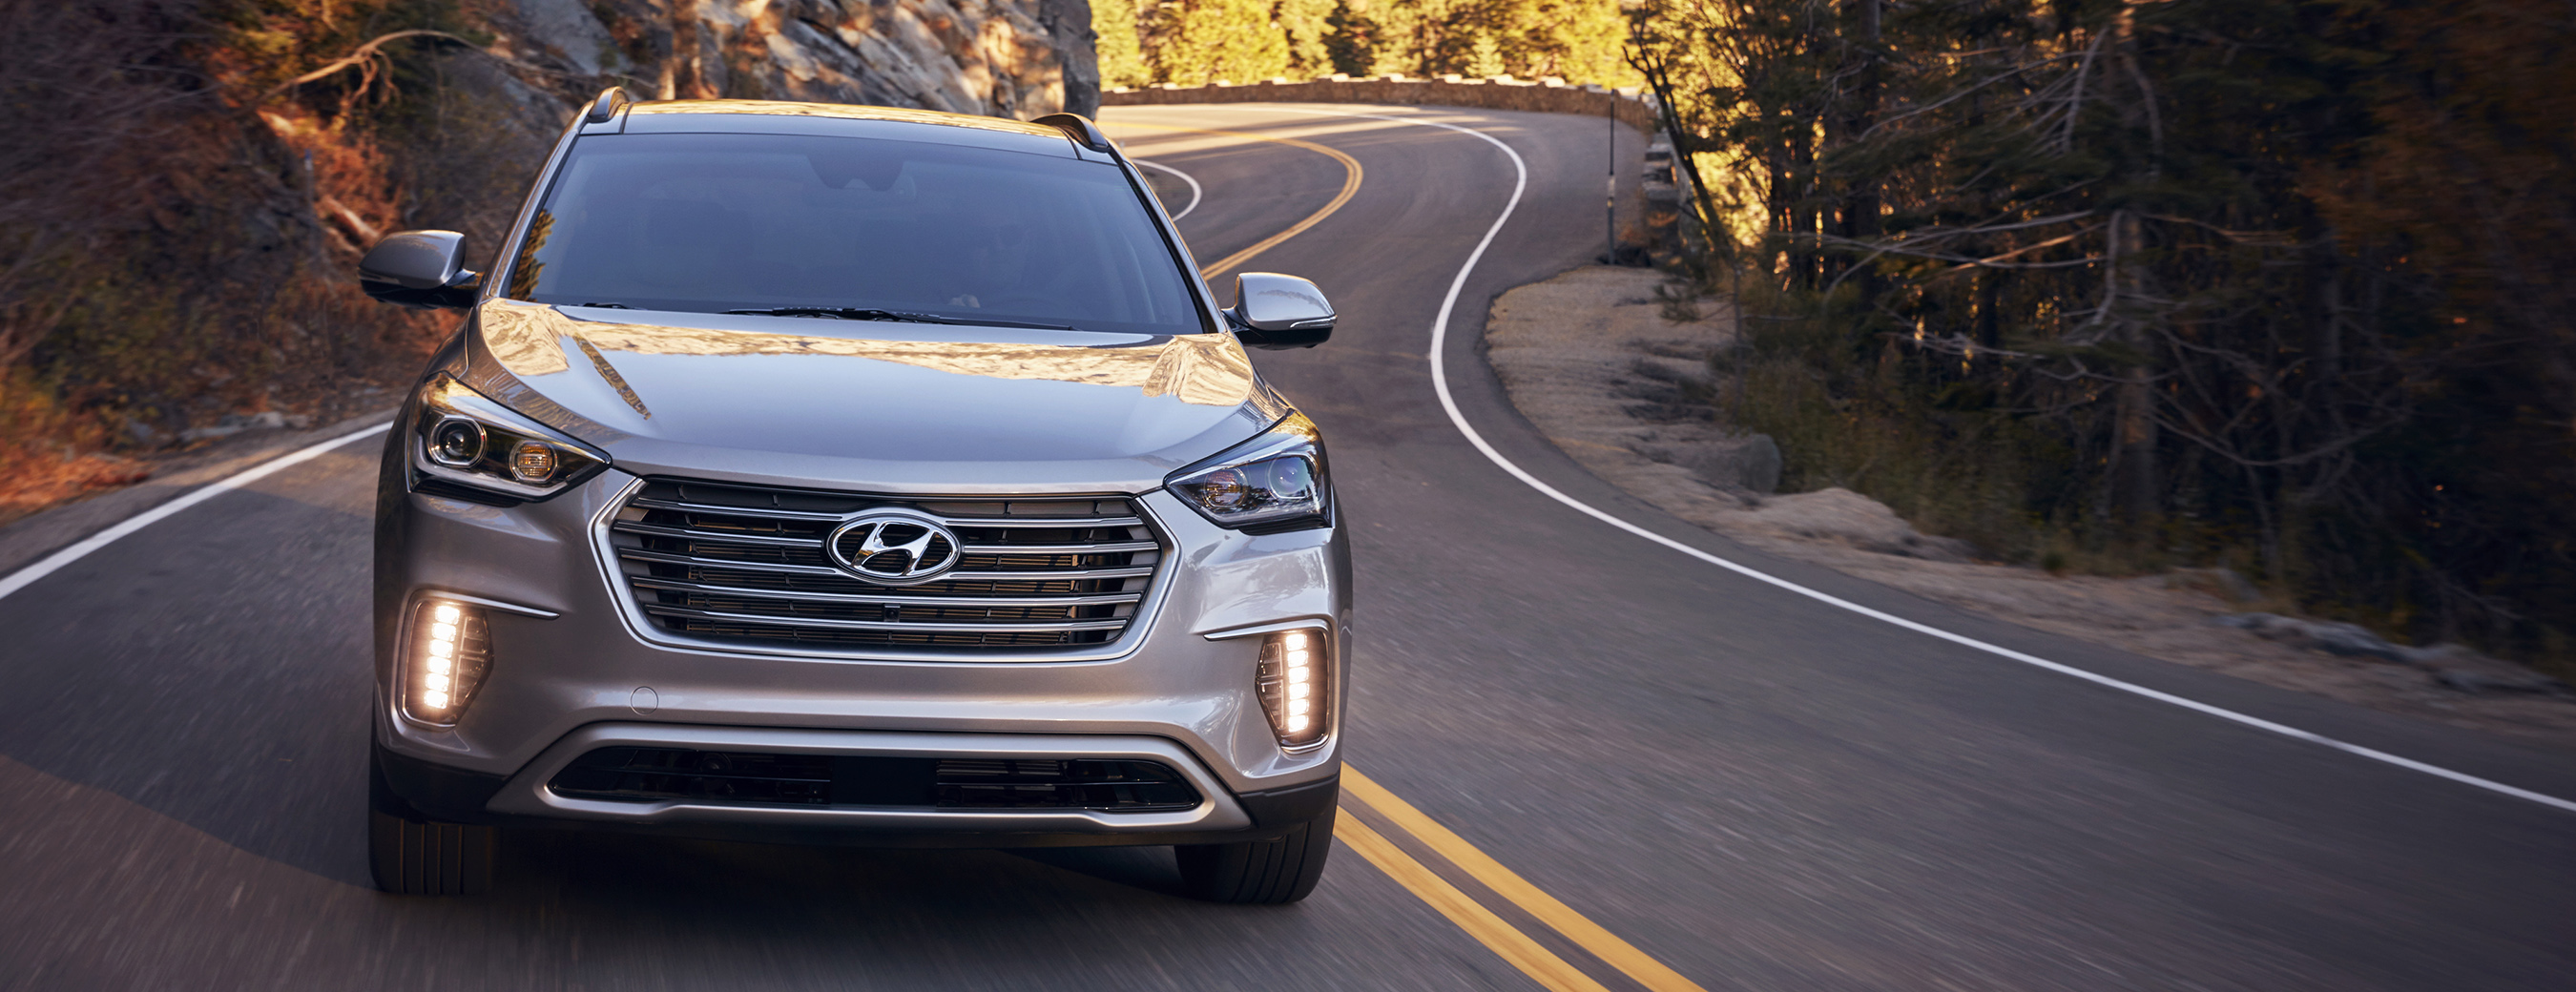 2017 Hyundai Santa Fe Line Up Features Enhanced Design Infotainment Led Lighting Convenience And Safety